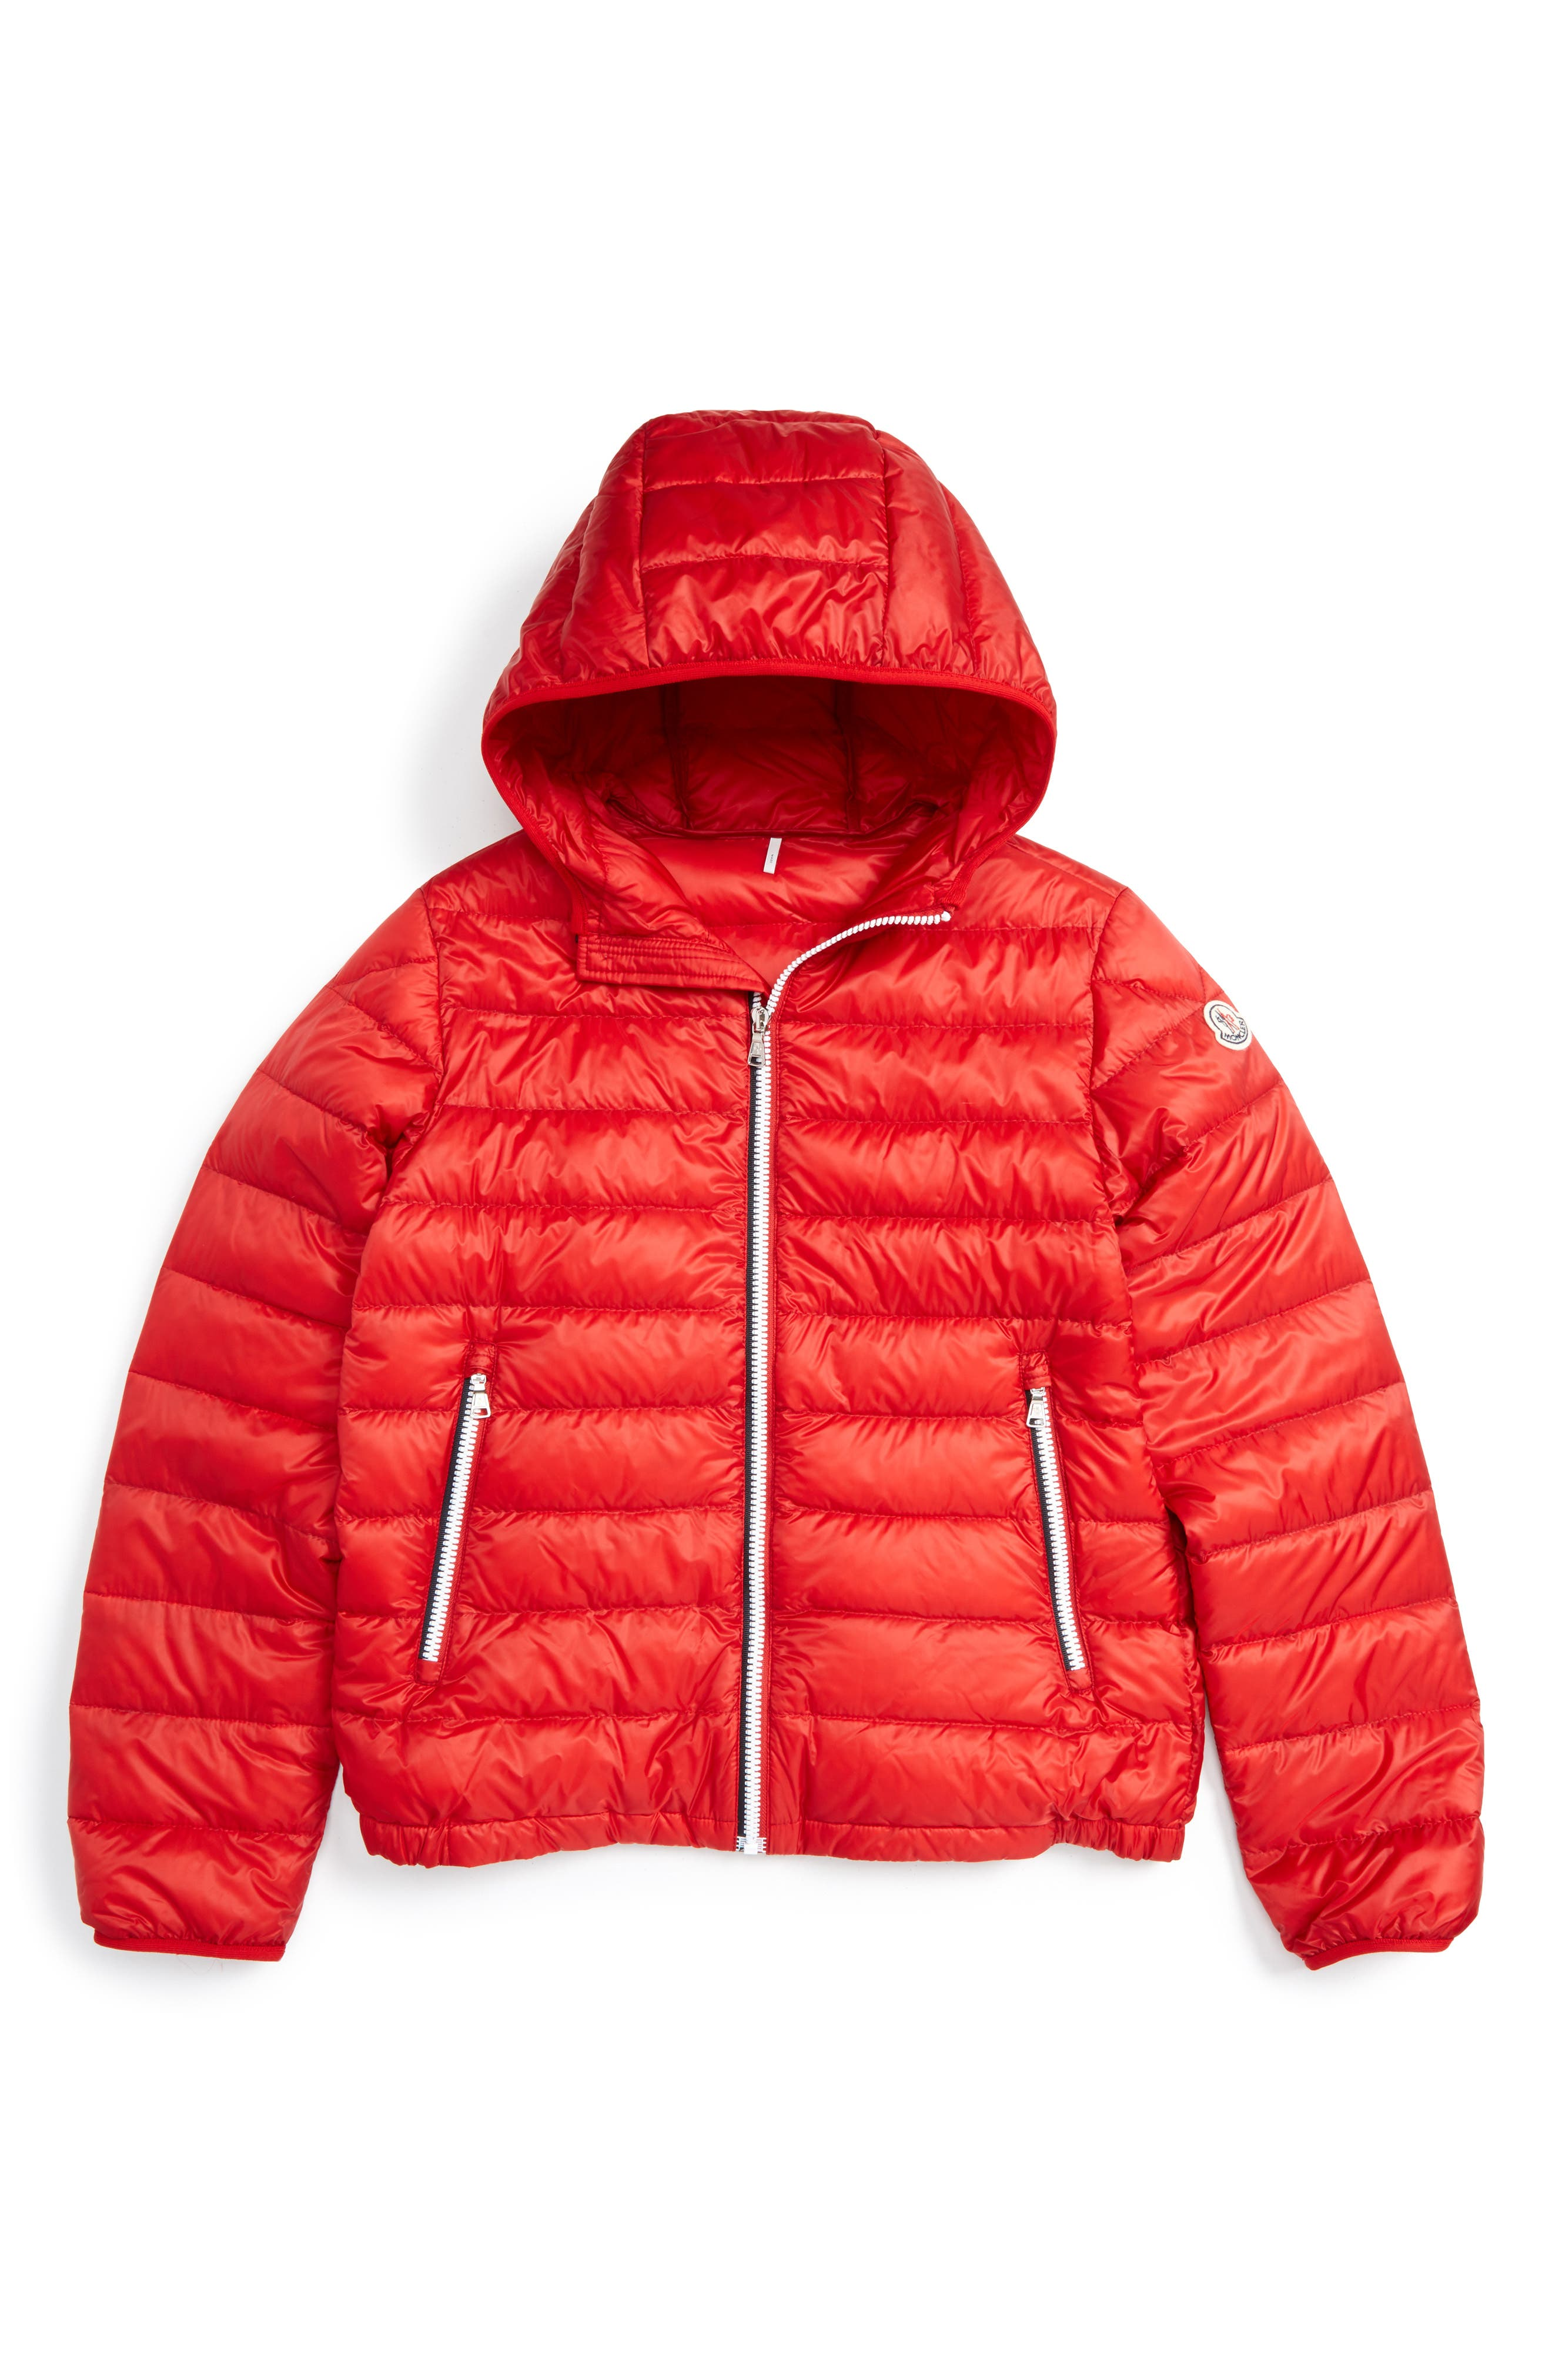 Main Image - Moncler Athenes Water Resistant Hooded Down Jacket (Toddler, Little Kids & Big Kids)